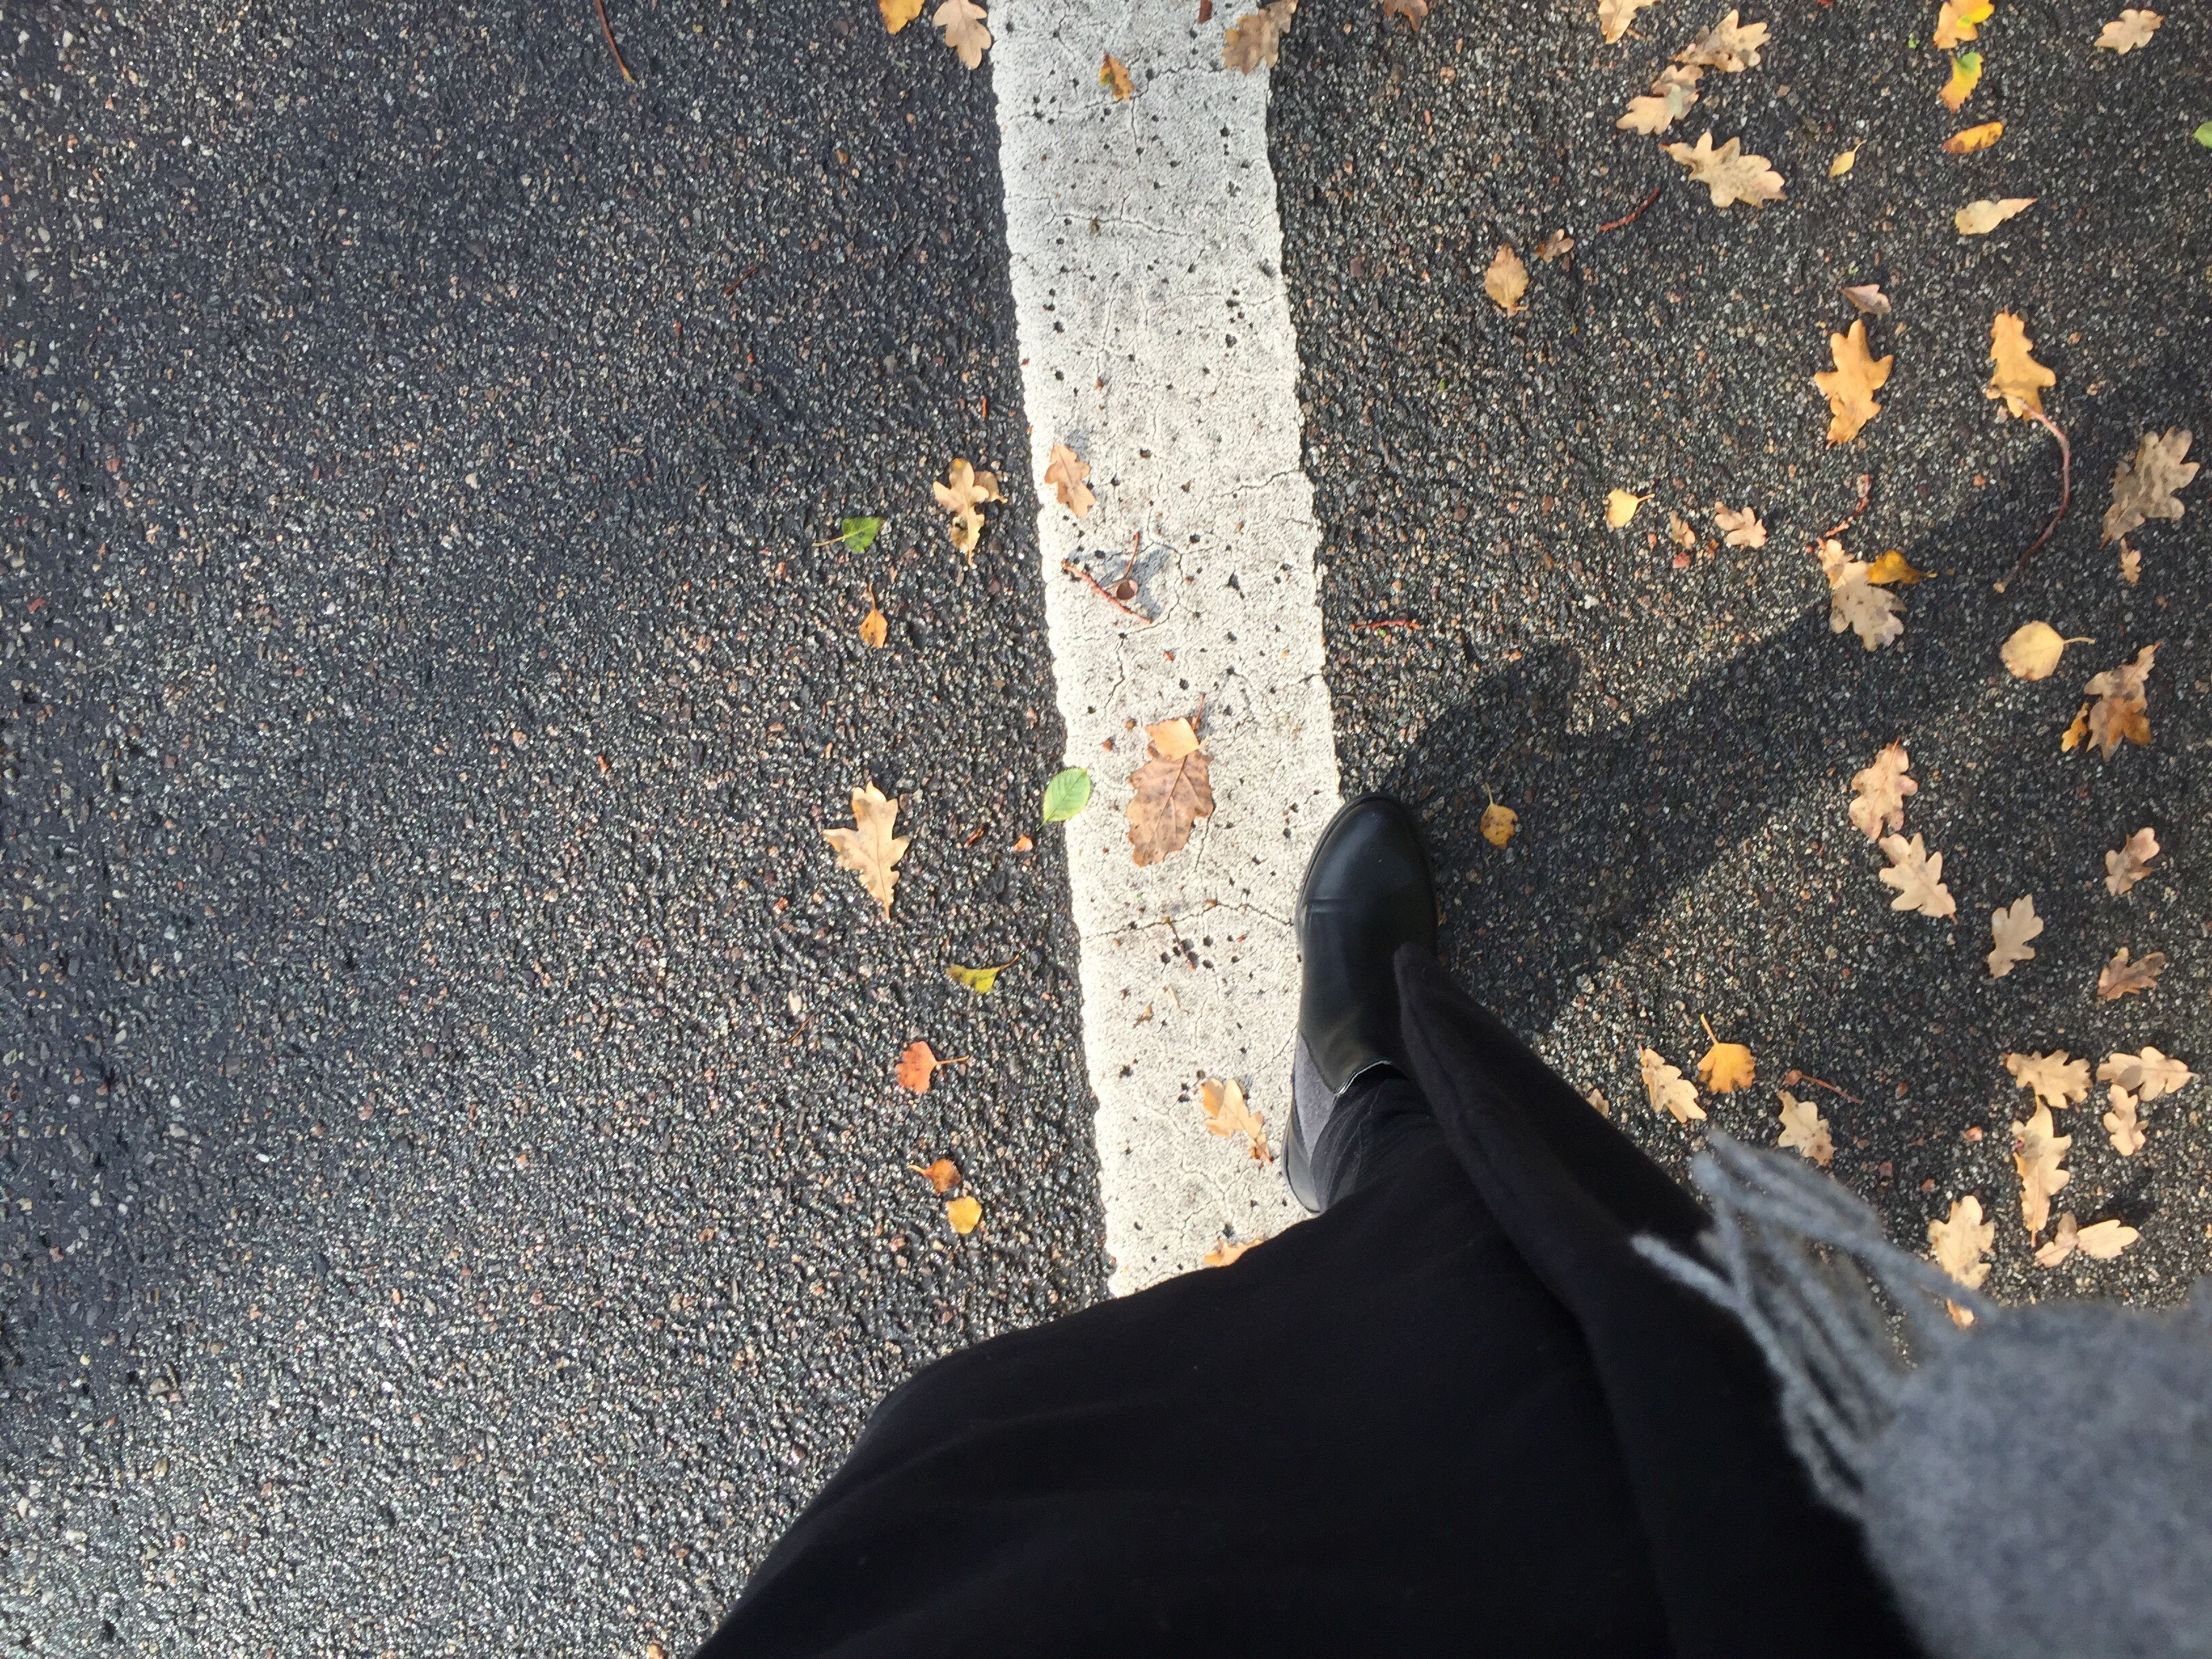 transportation, road marking, road, asphalt, low section, street, person, standing, personal perspective, day, limb, line